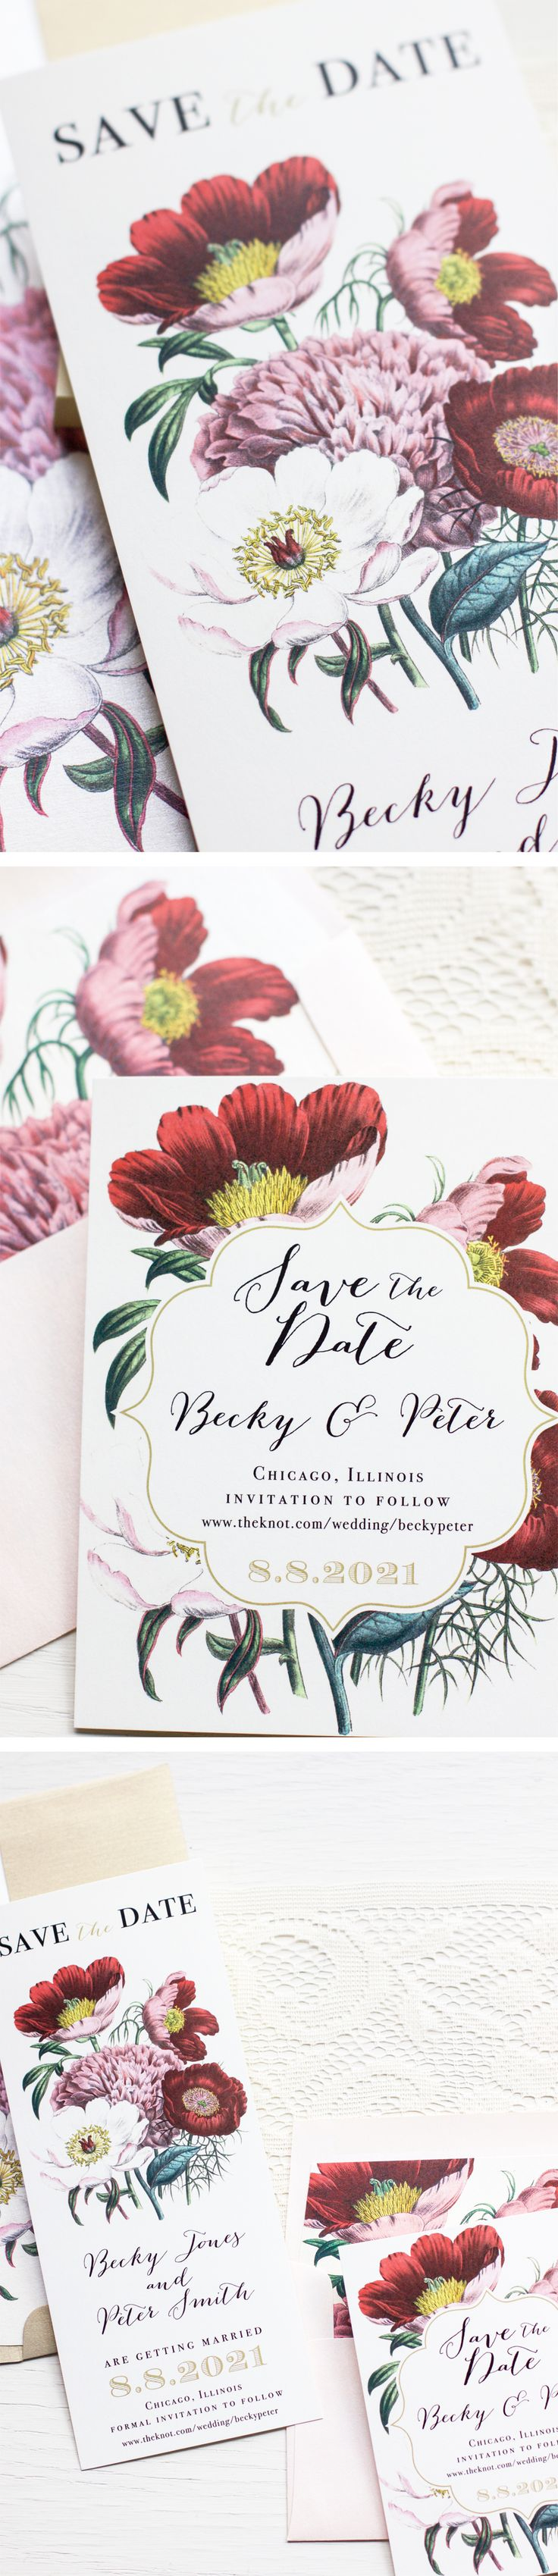 73 best Save the Dates images on Pinterest | Wedding ideas, Dream ...